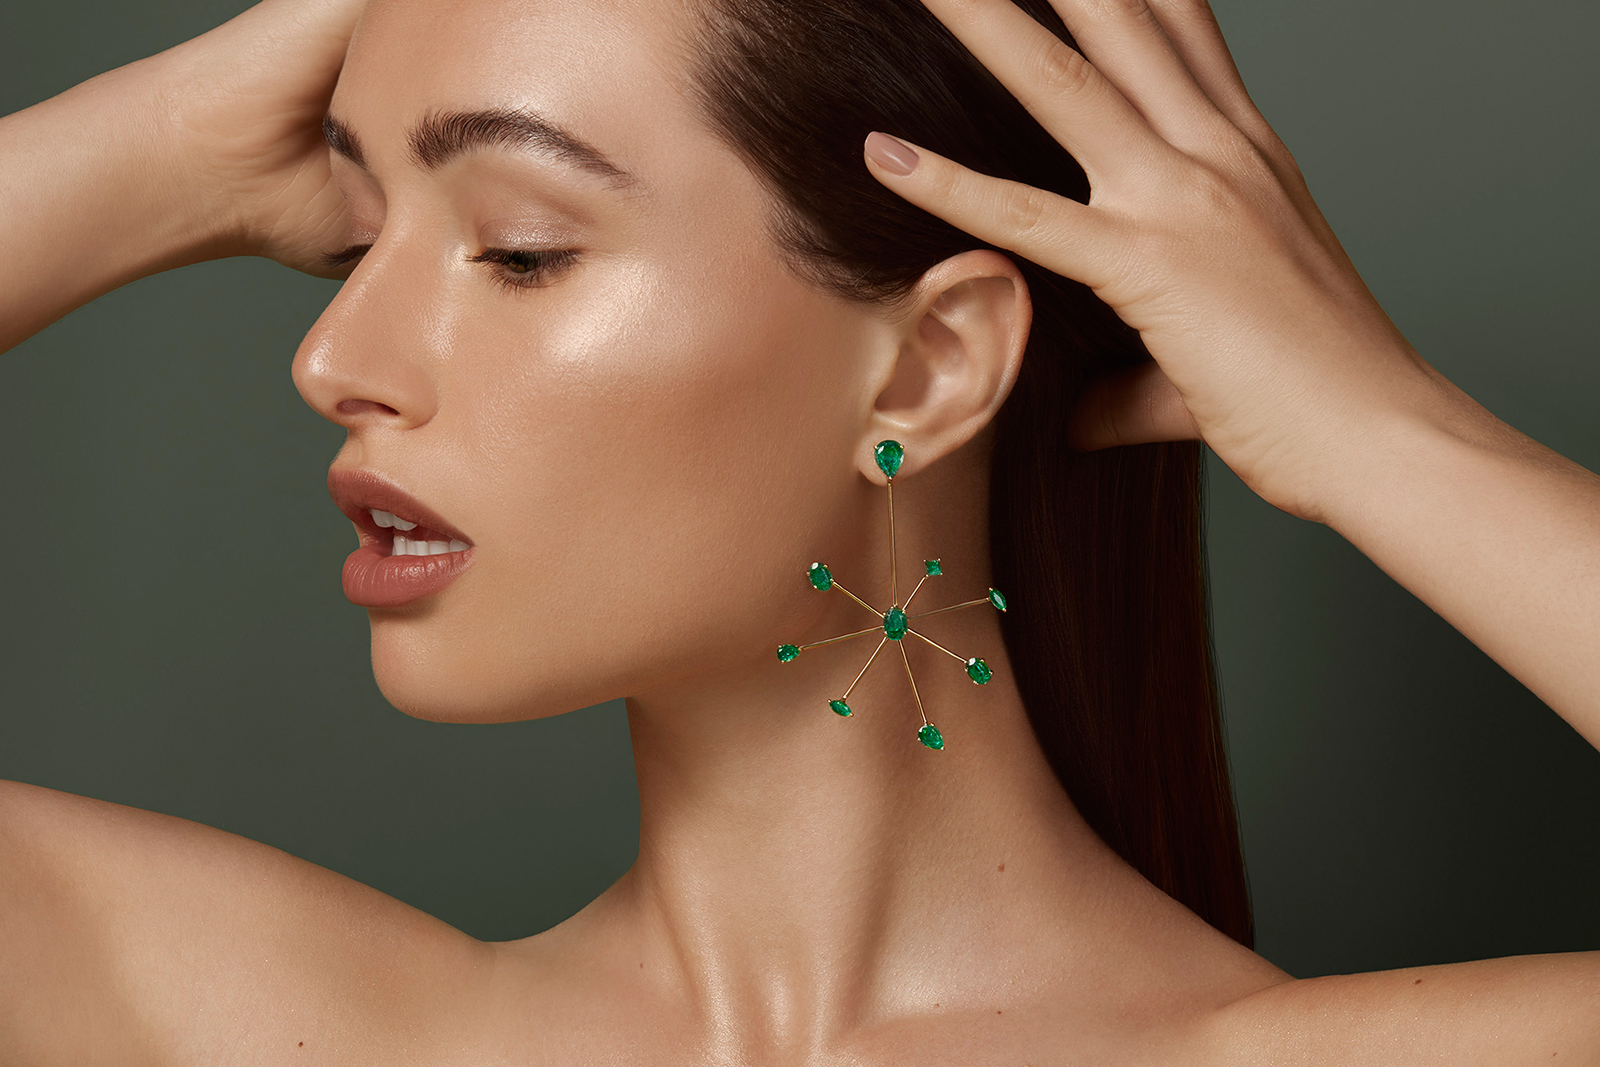 House of Meraki 'Jellyfish' emerald earrings